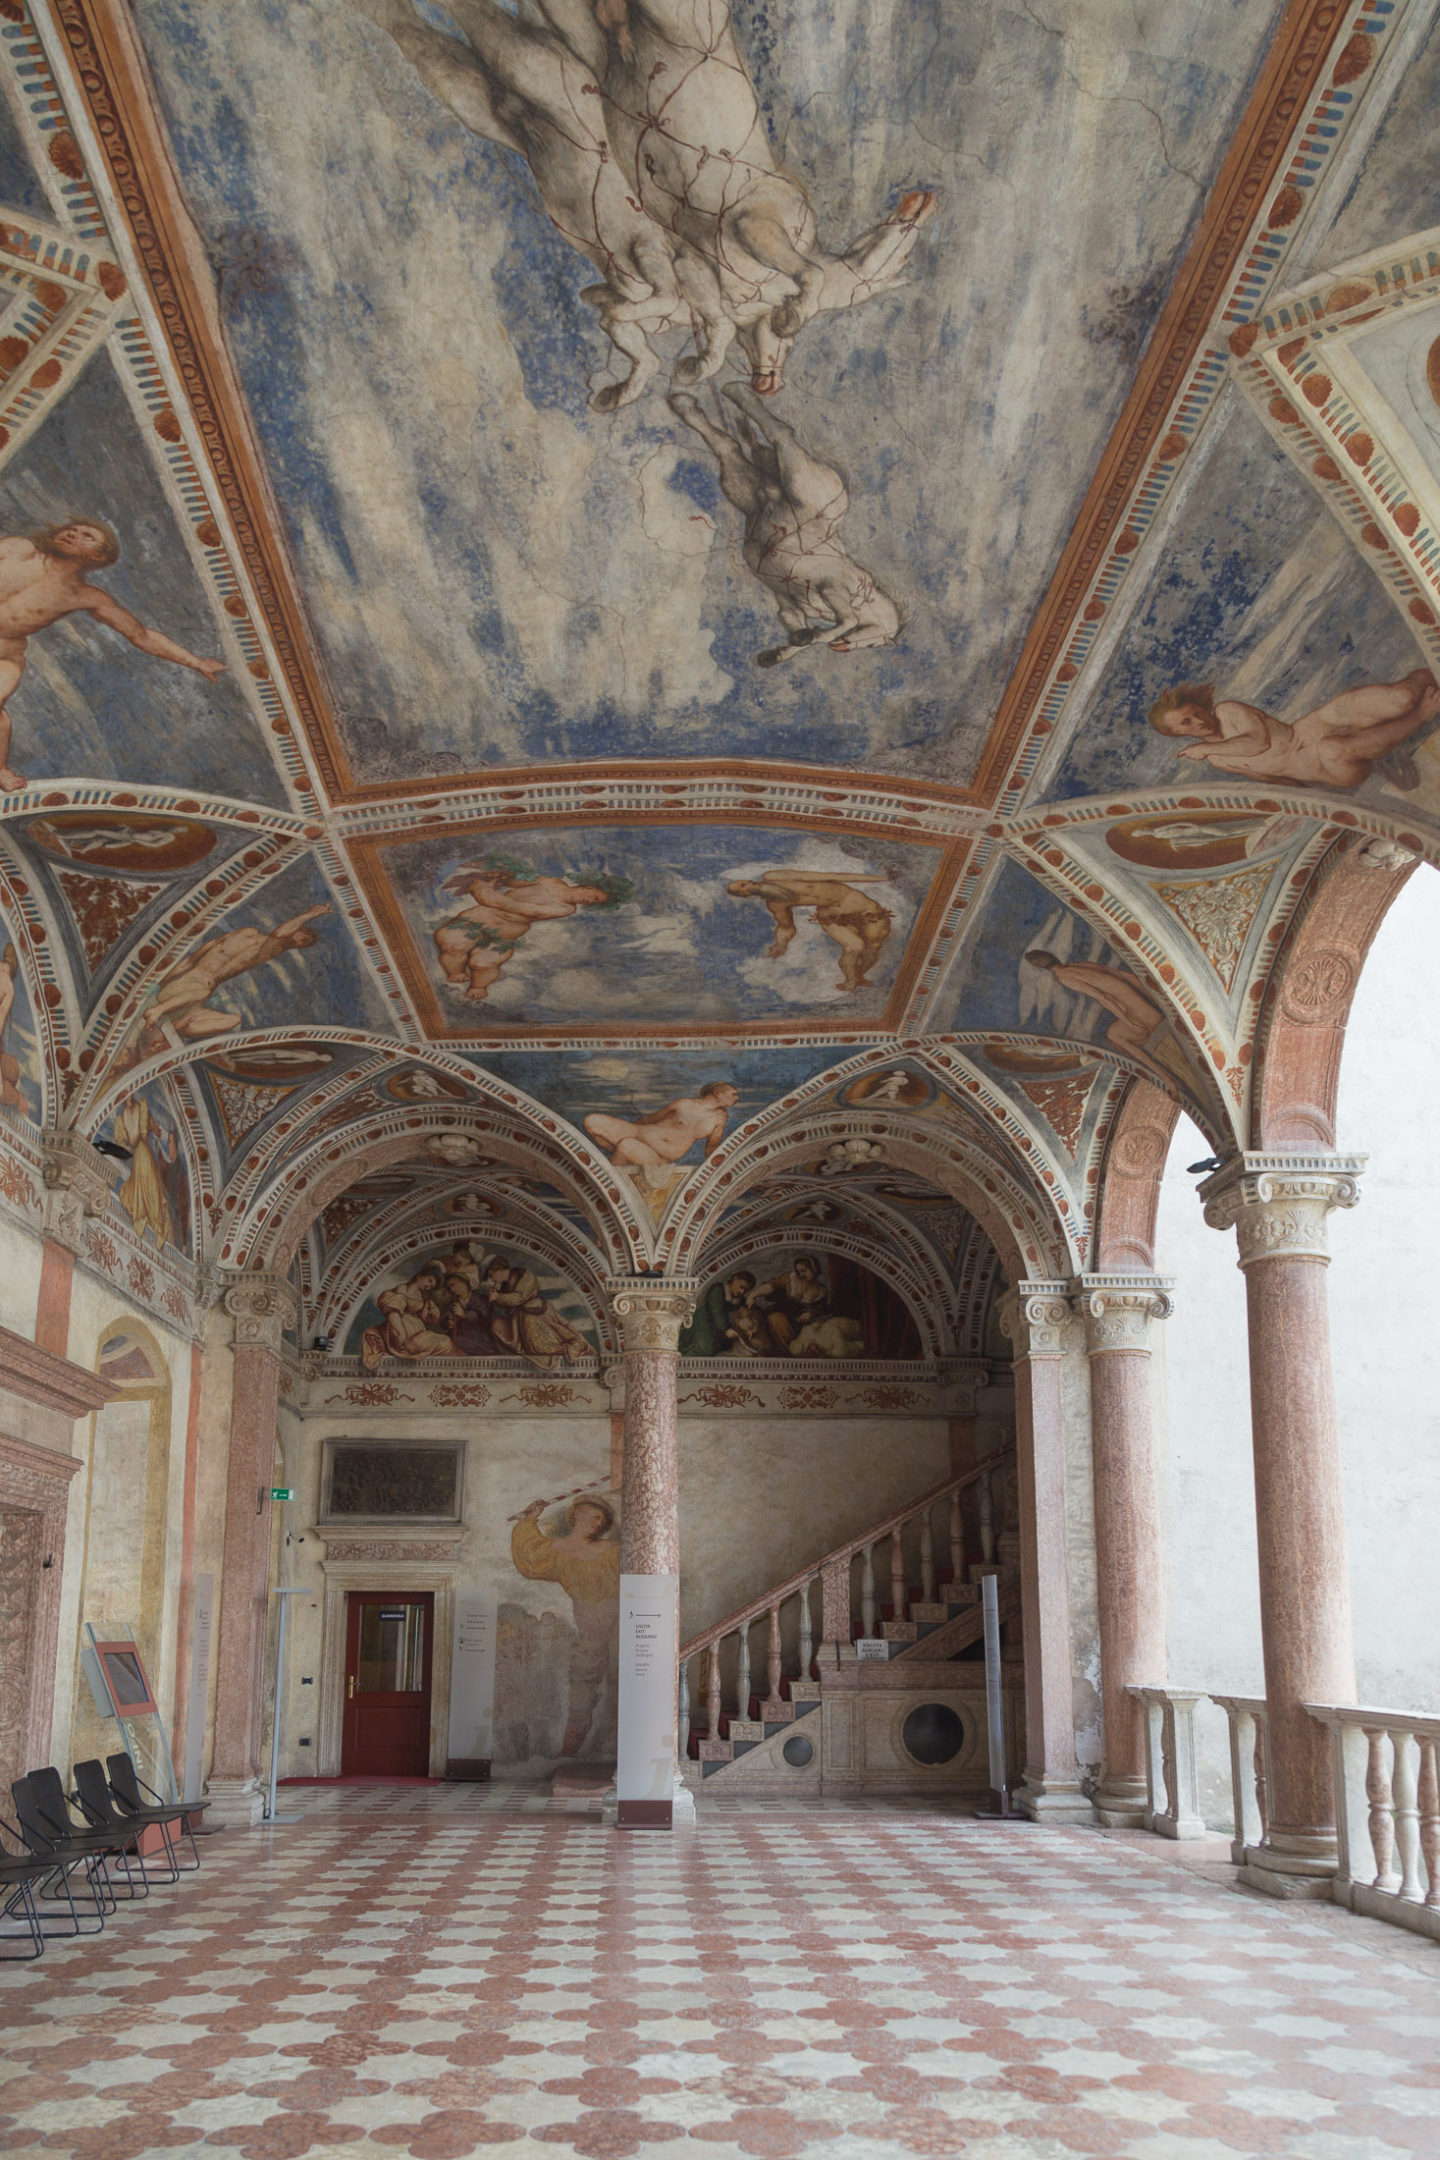 ceiling in Trento castle -- top is all painting with a lot of blue and then two arches and a tiled floor